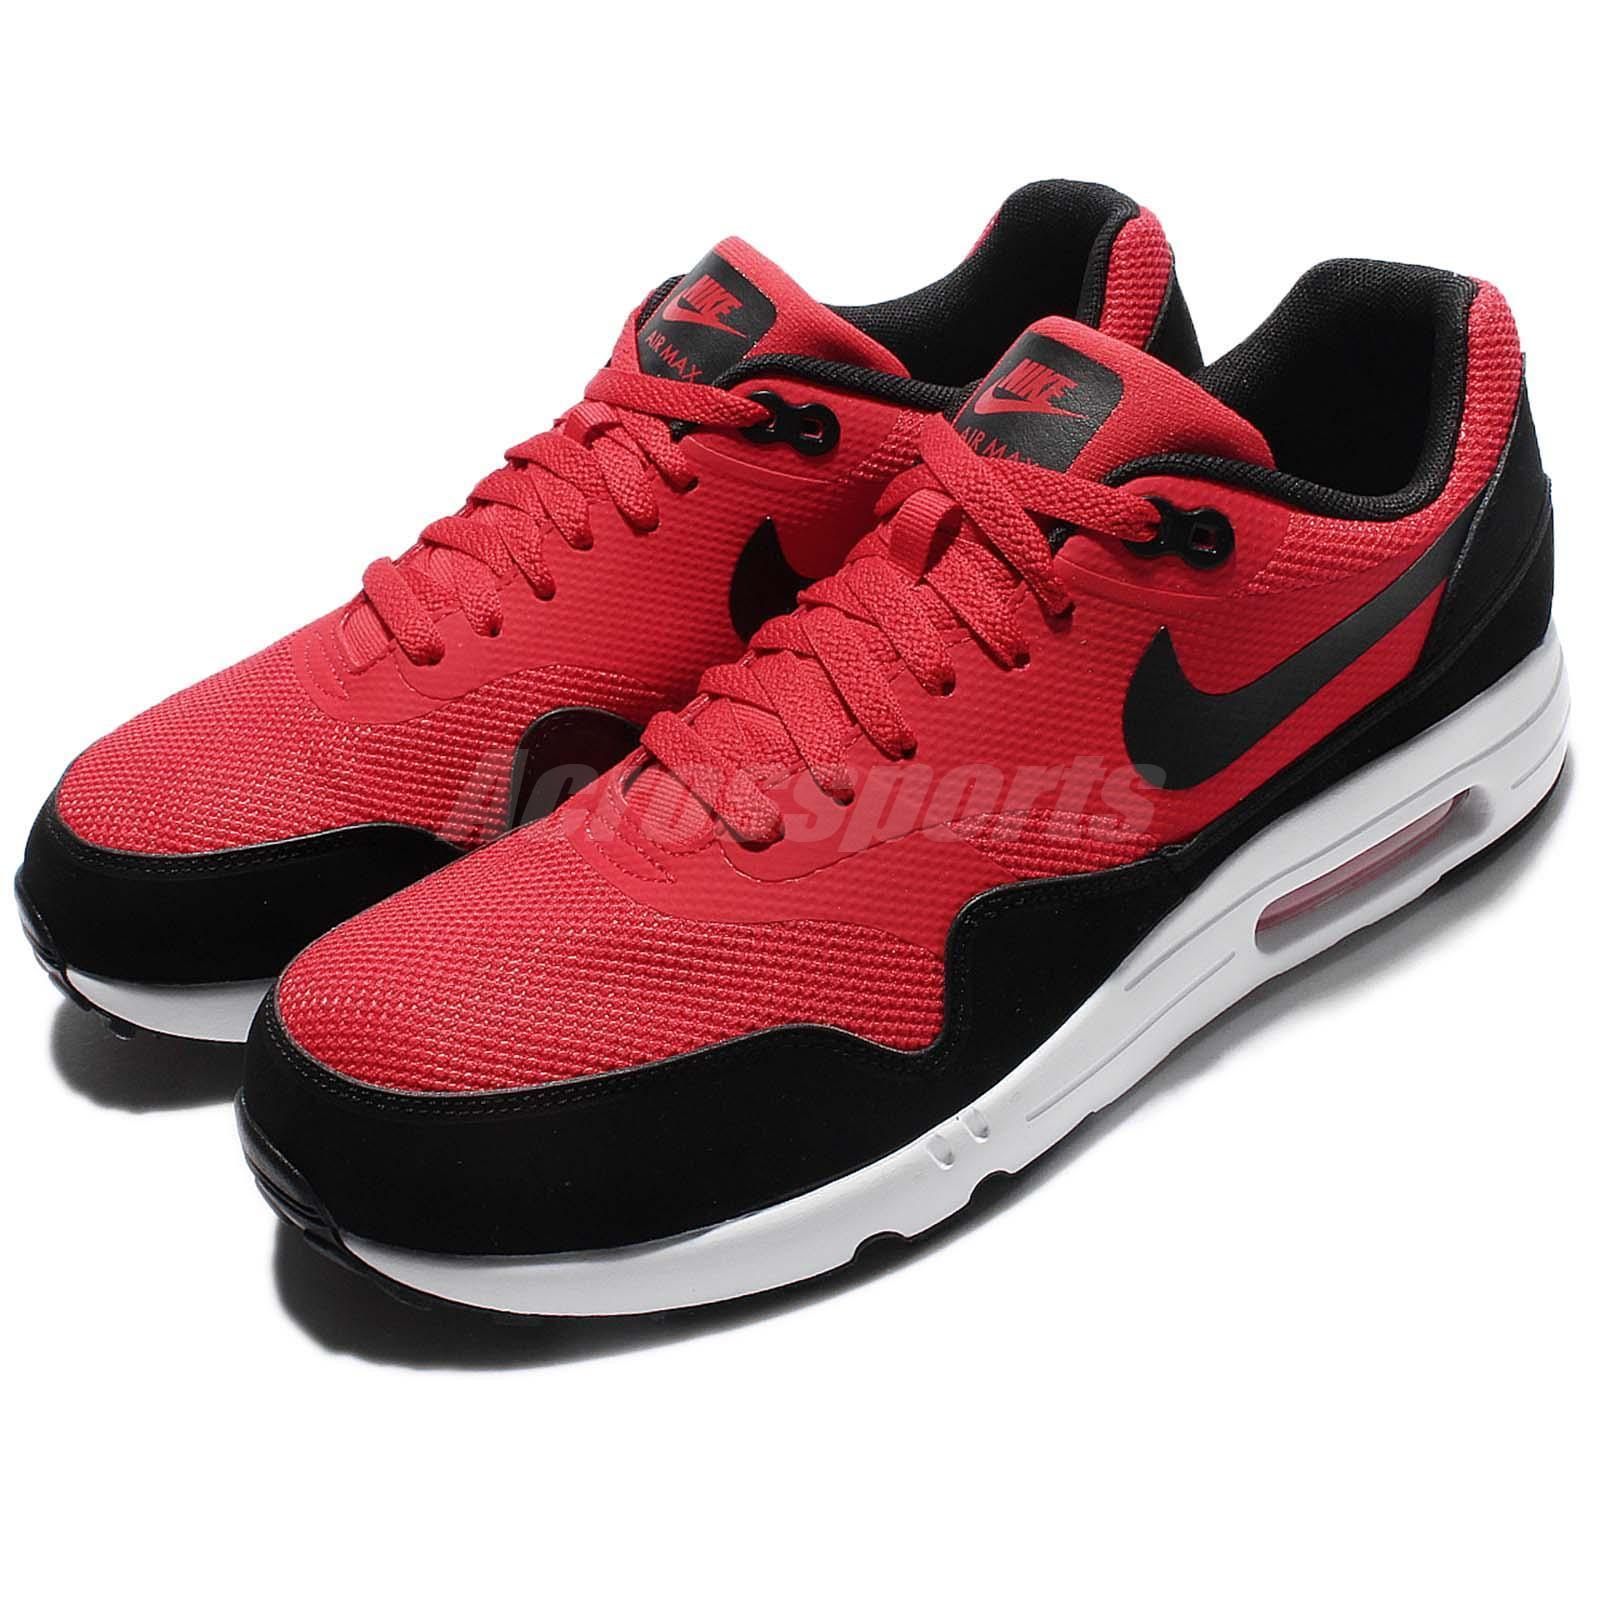 Nike Air Max 1 Ultra 2.0 Essential / / SE / Flyknit homme / / Femme Sneakers Pick 1 f24dde